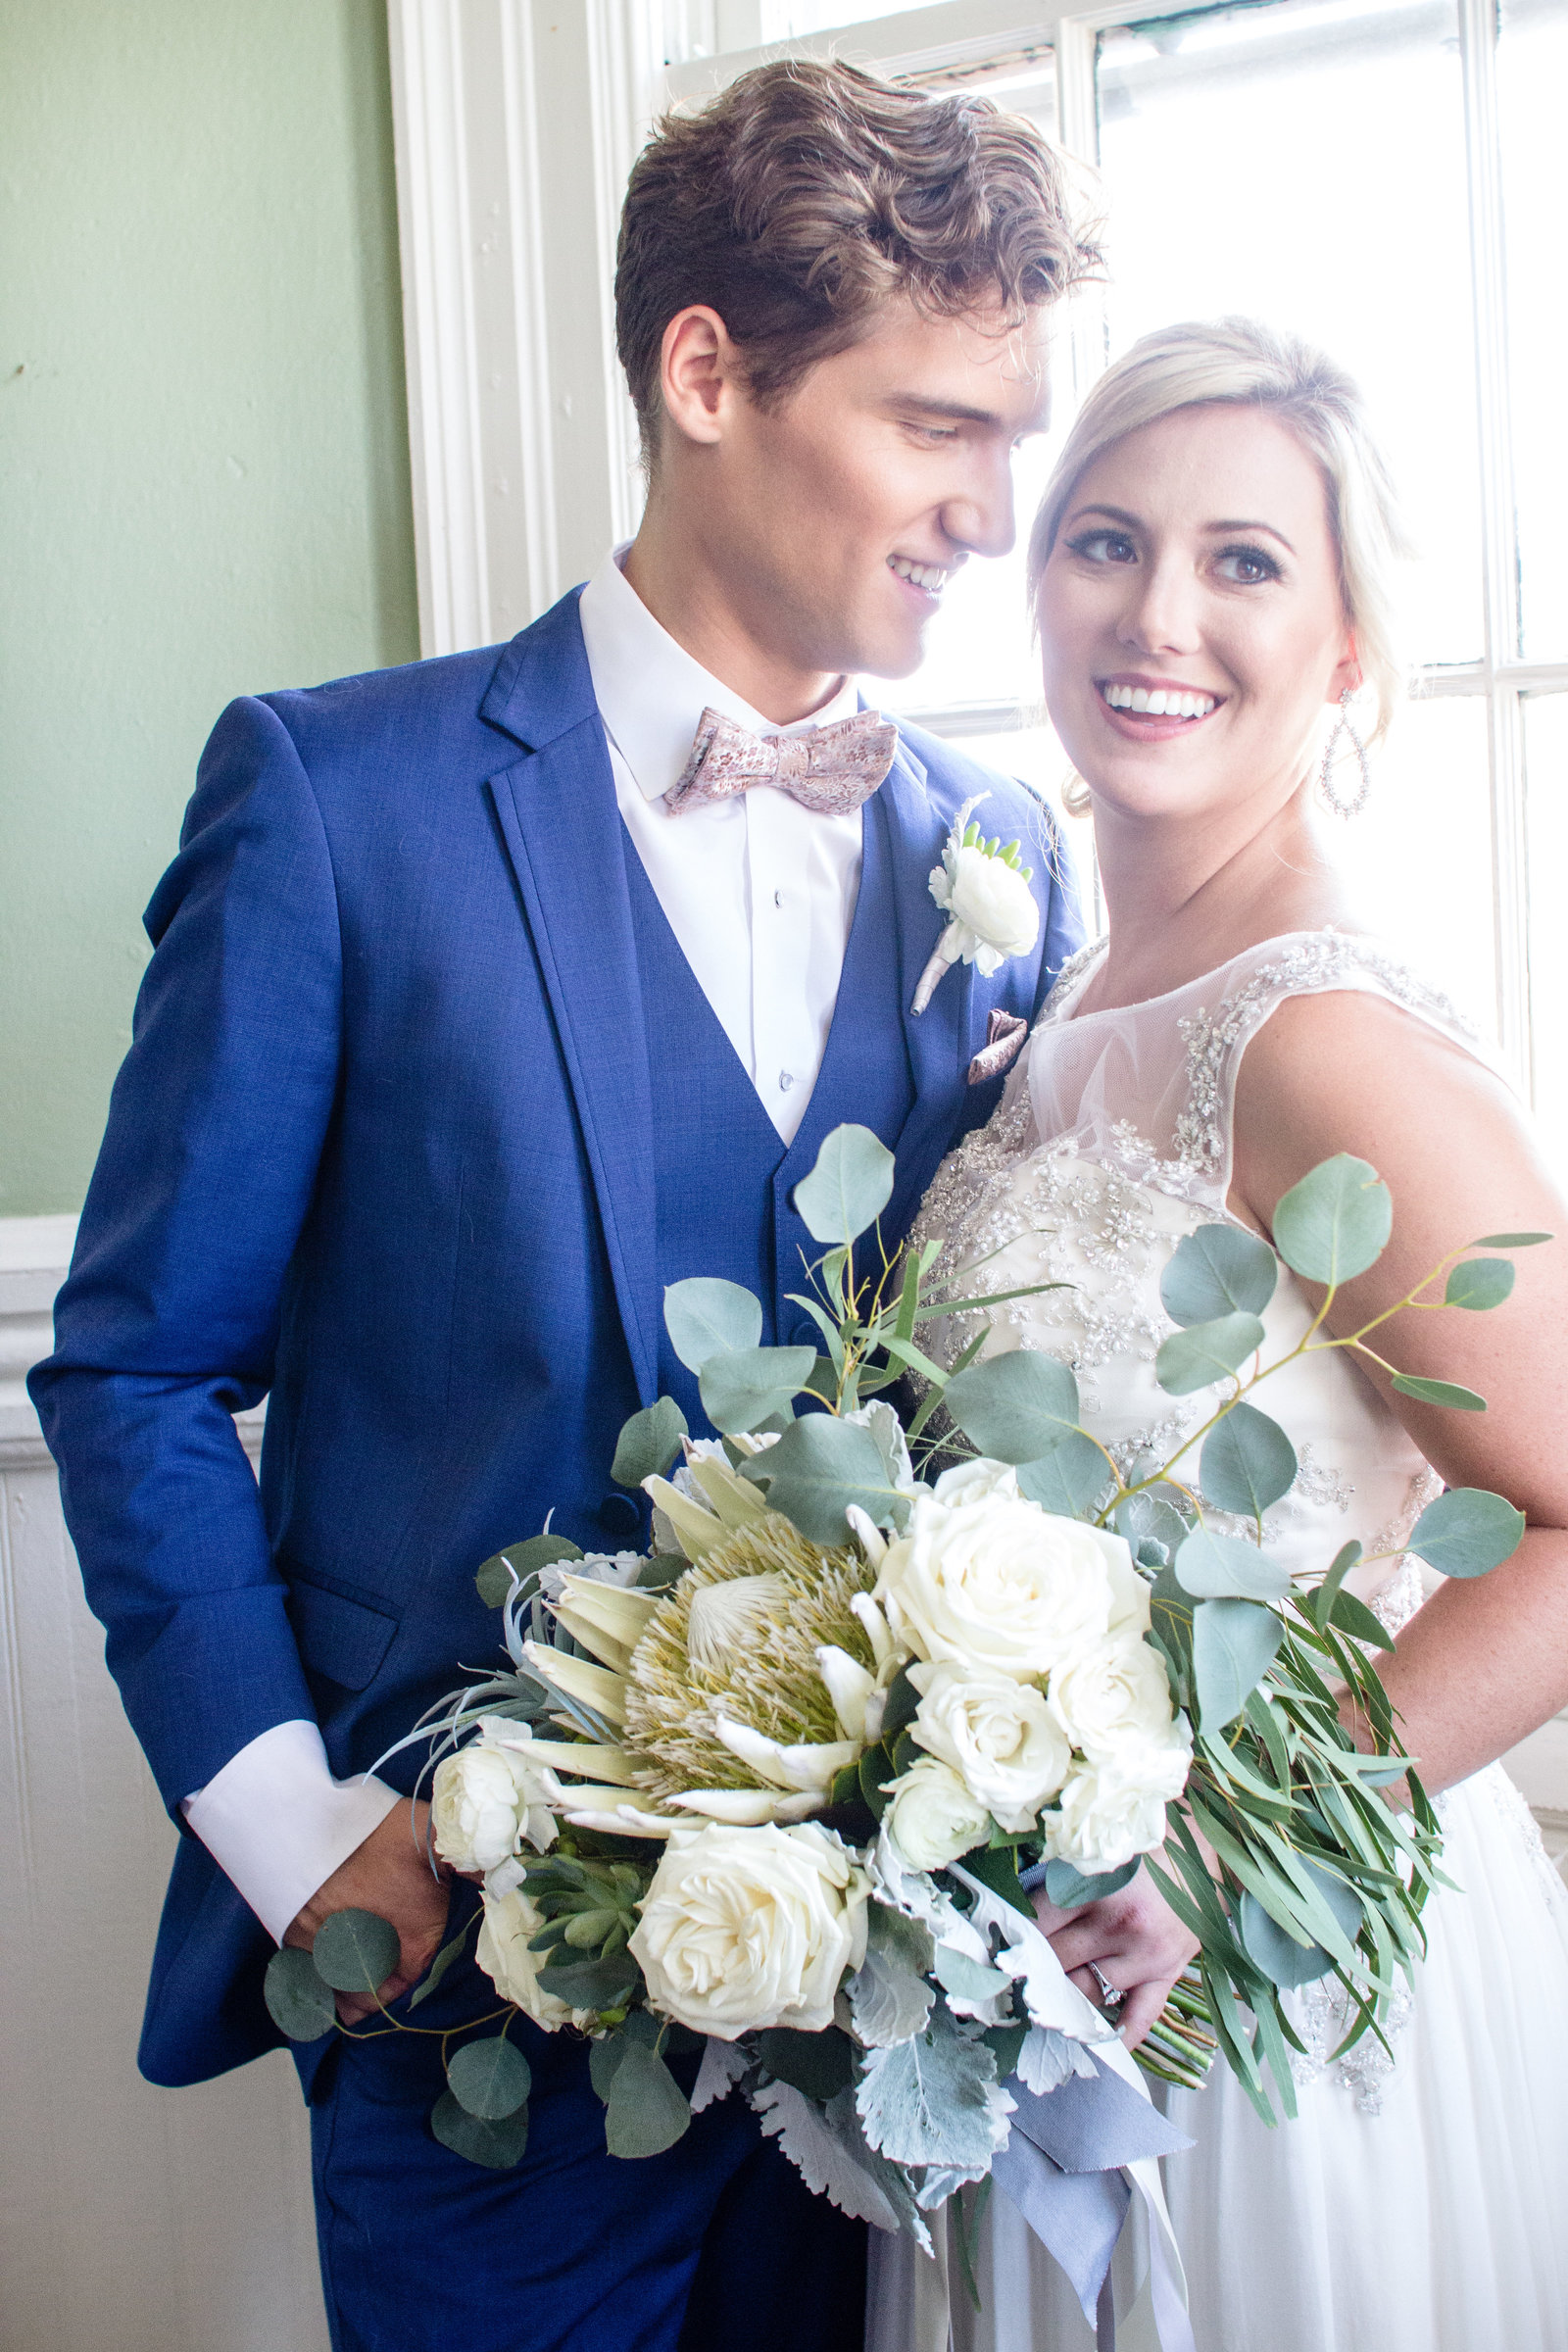 Nashville Wedding Photography | Bridal Details